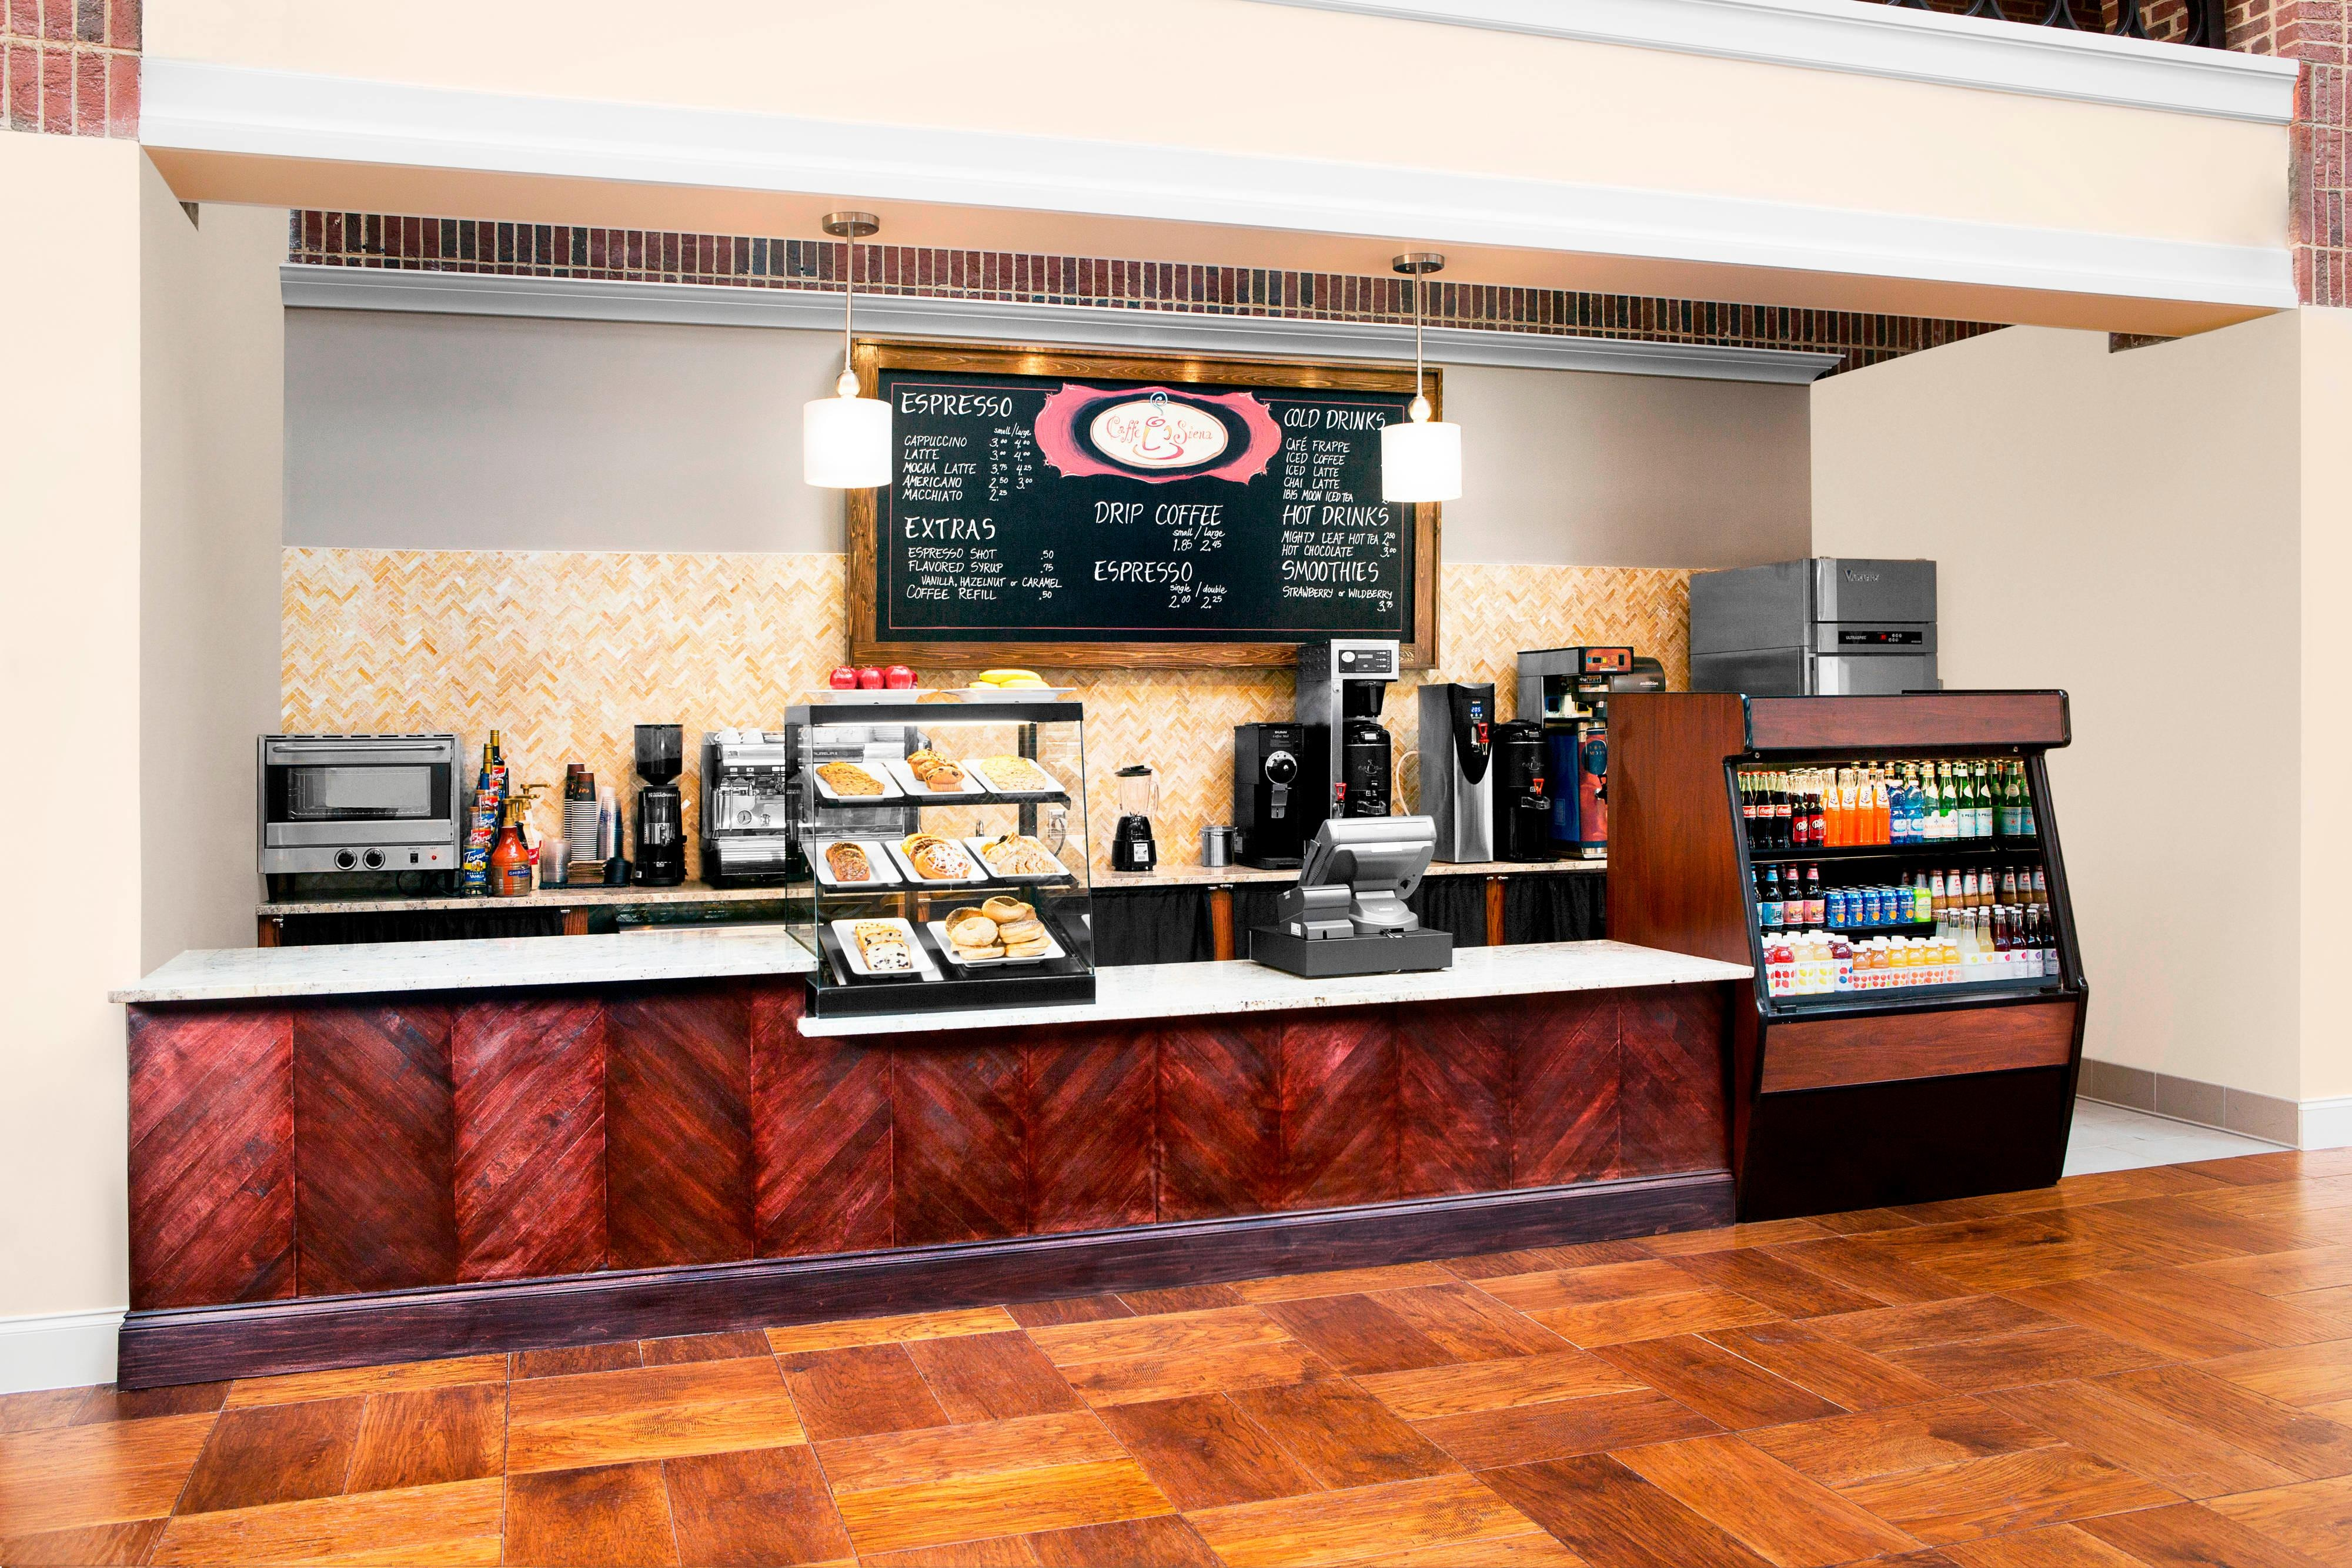 Cafe Sienna in Lobby